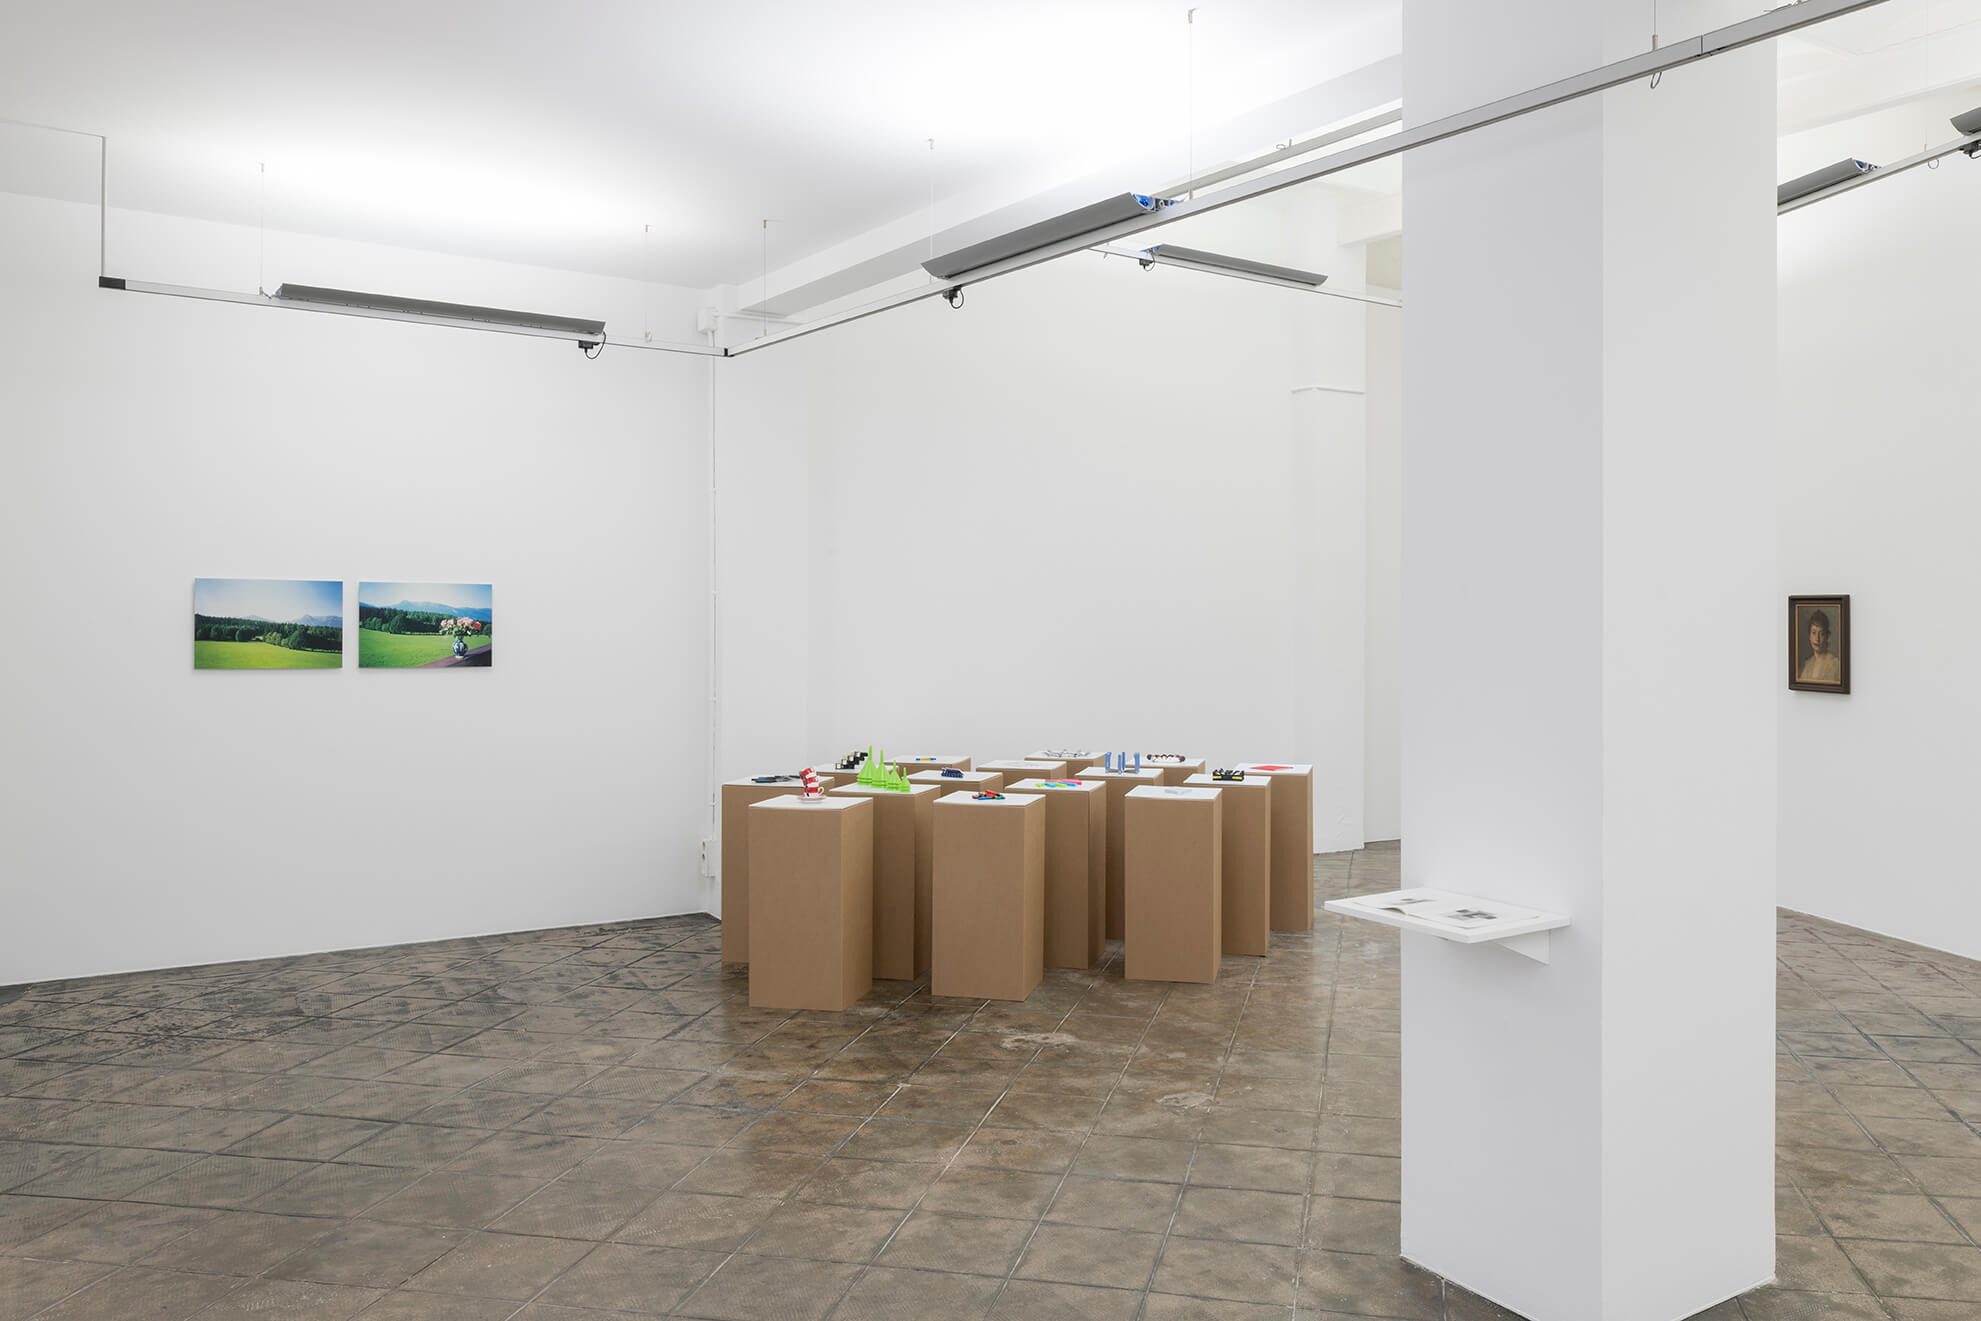 Installation view, Another Art Exhibition, ProjecteSD | Another Art Exhibition | ProjecteSD